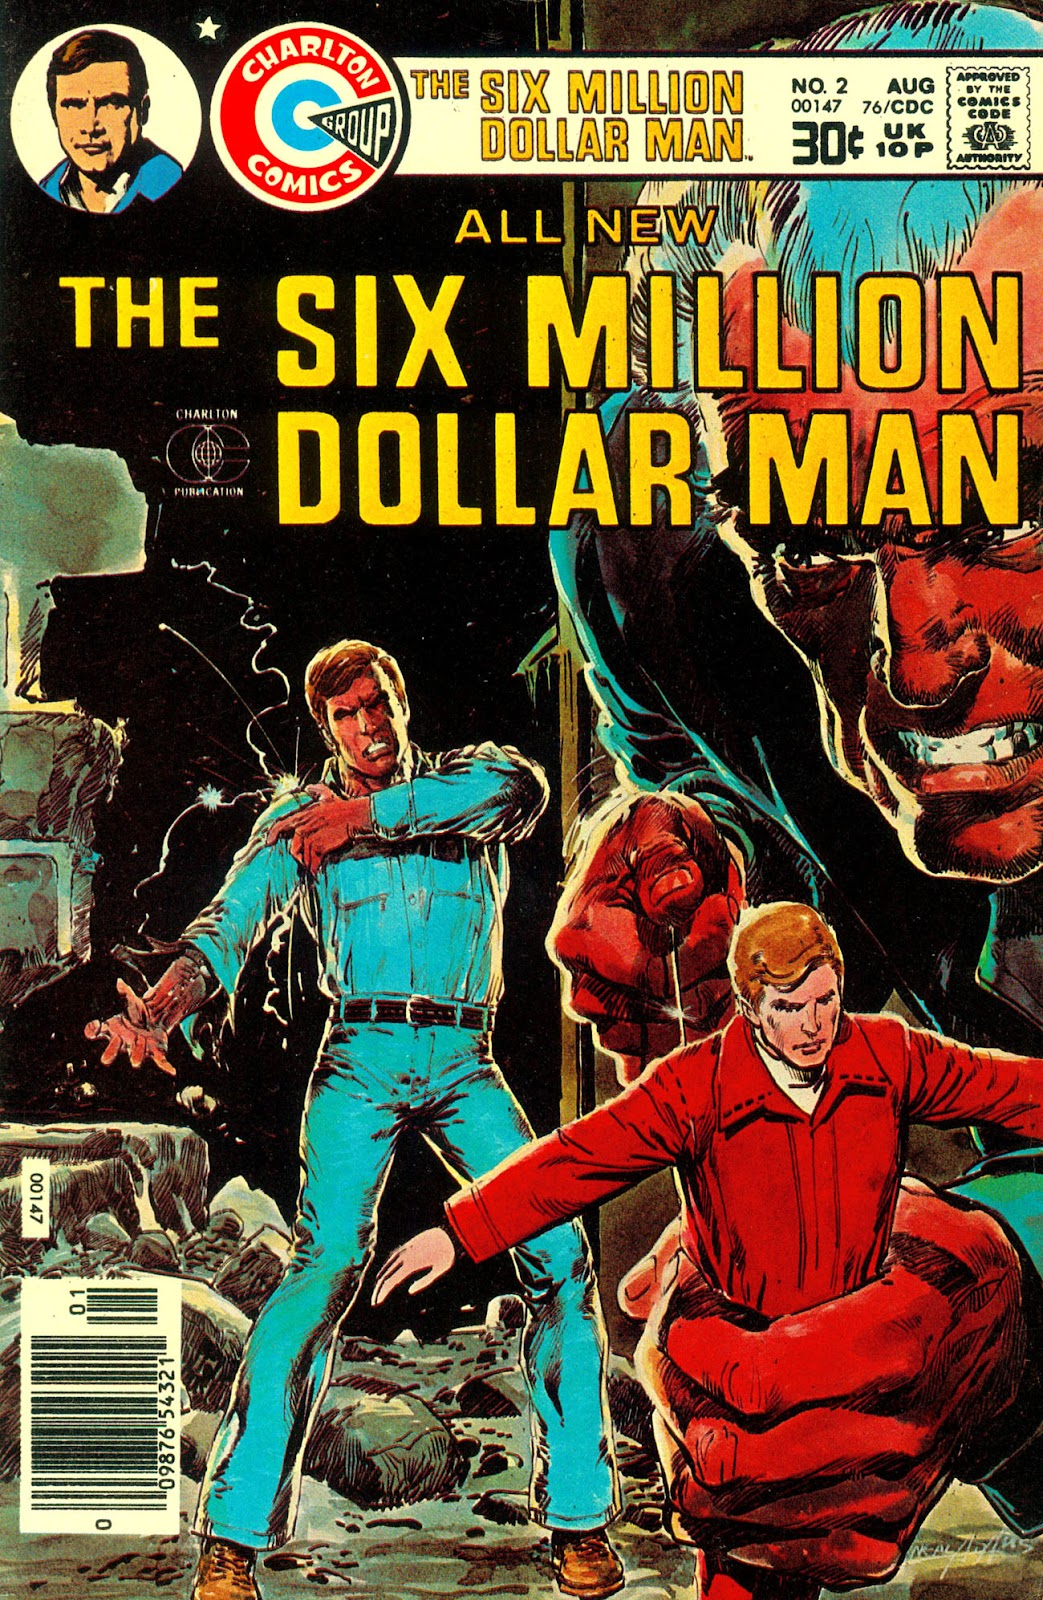 The Six Million Dollar Man [comic] issue 2 - Page 1